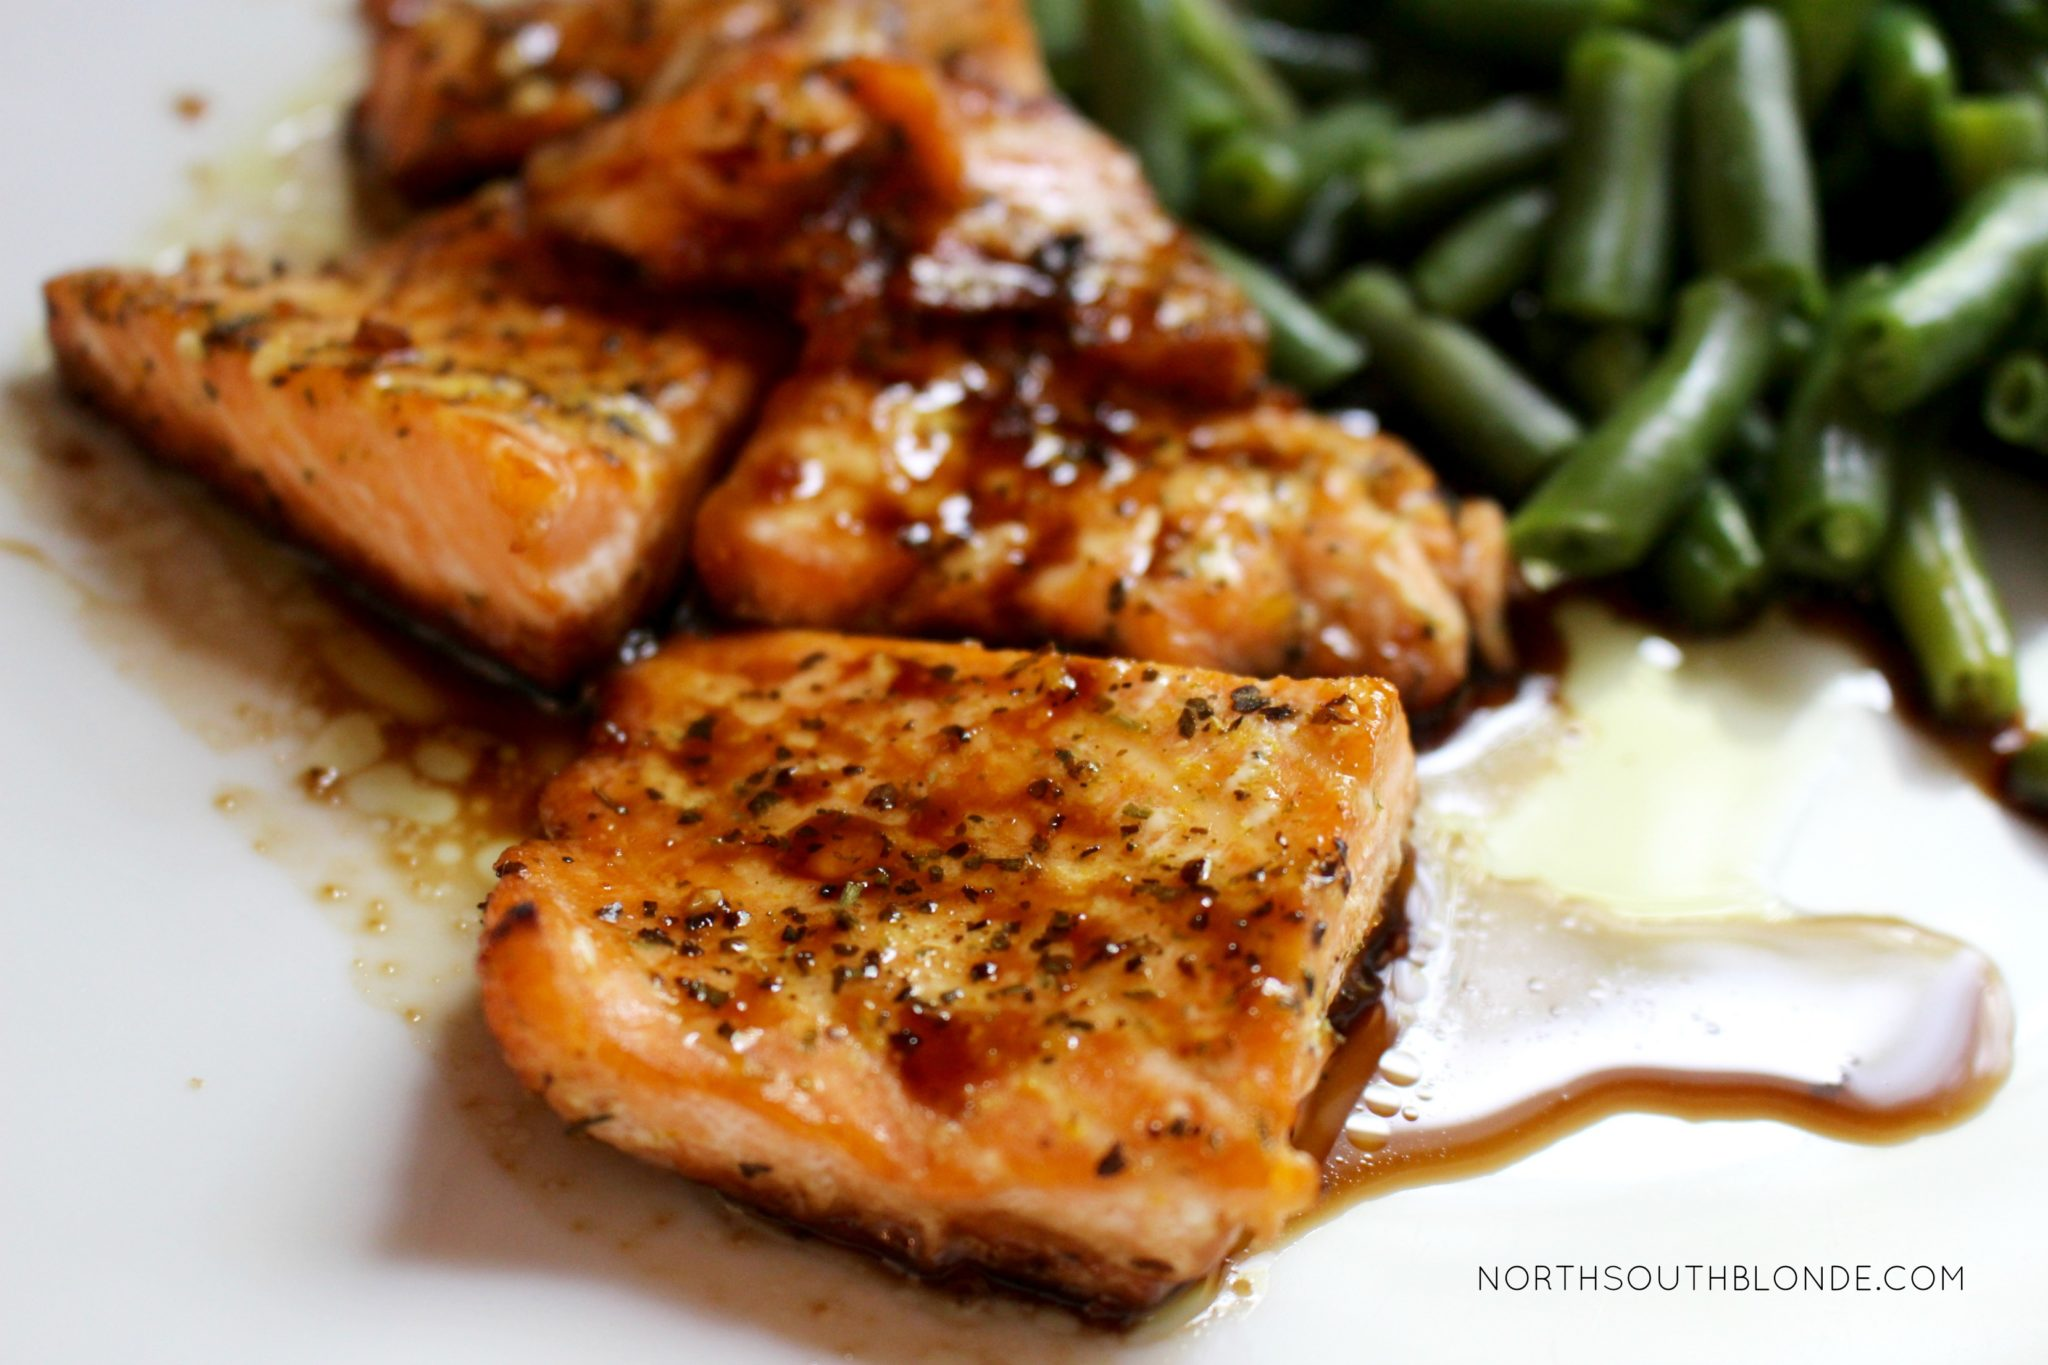 A tasty teriyaki salmon recipe that's sweet enough to get your kids eating healthy. The marinade is super easy to make and involves only a few ingredients! Easy Recipes | Dinner | Lunch | Marinade | Seafood | Fish | Gluten-Free | Quick & Easy | Clean Eating | Healthy | Good For You | Weight Loss | High Omega 3's | Healthy Fats | Brain Food | Toddler Food | Kid-Friendly | Super Food | Easy Dinner Recipes | Main Dish | Entree Ideas |